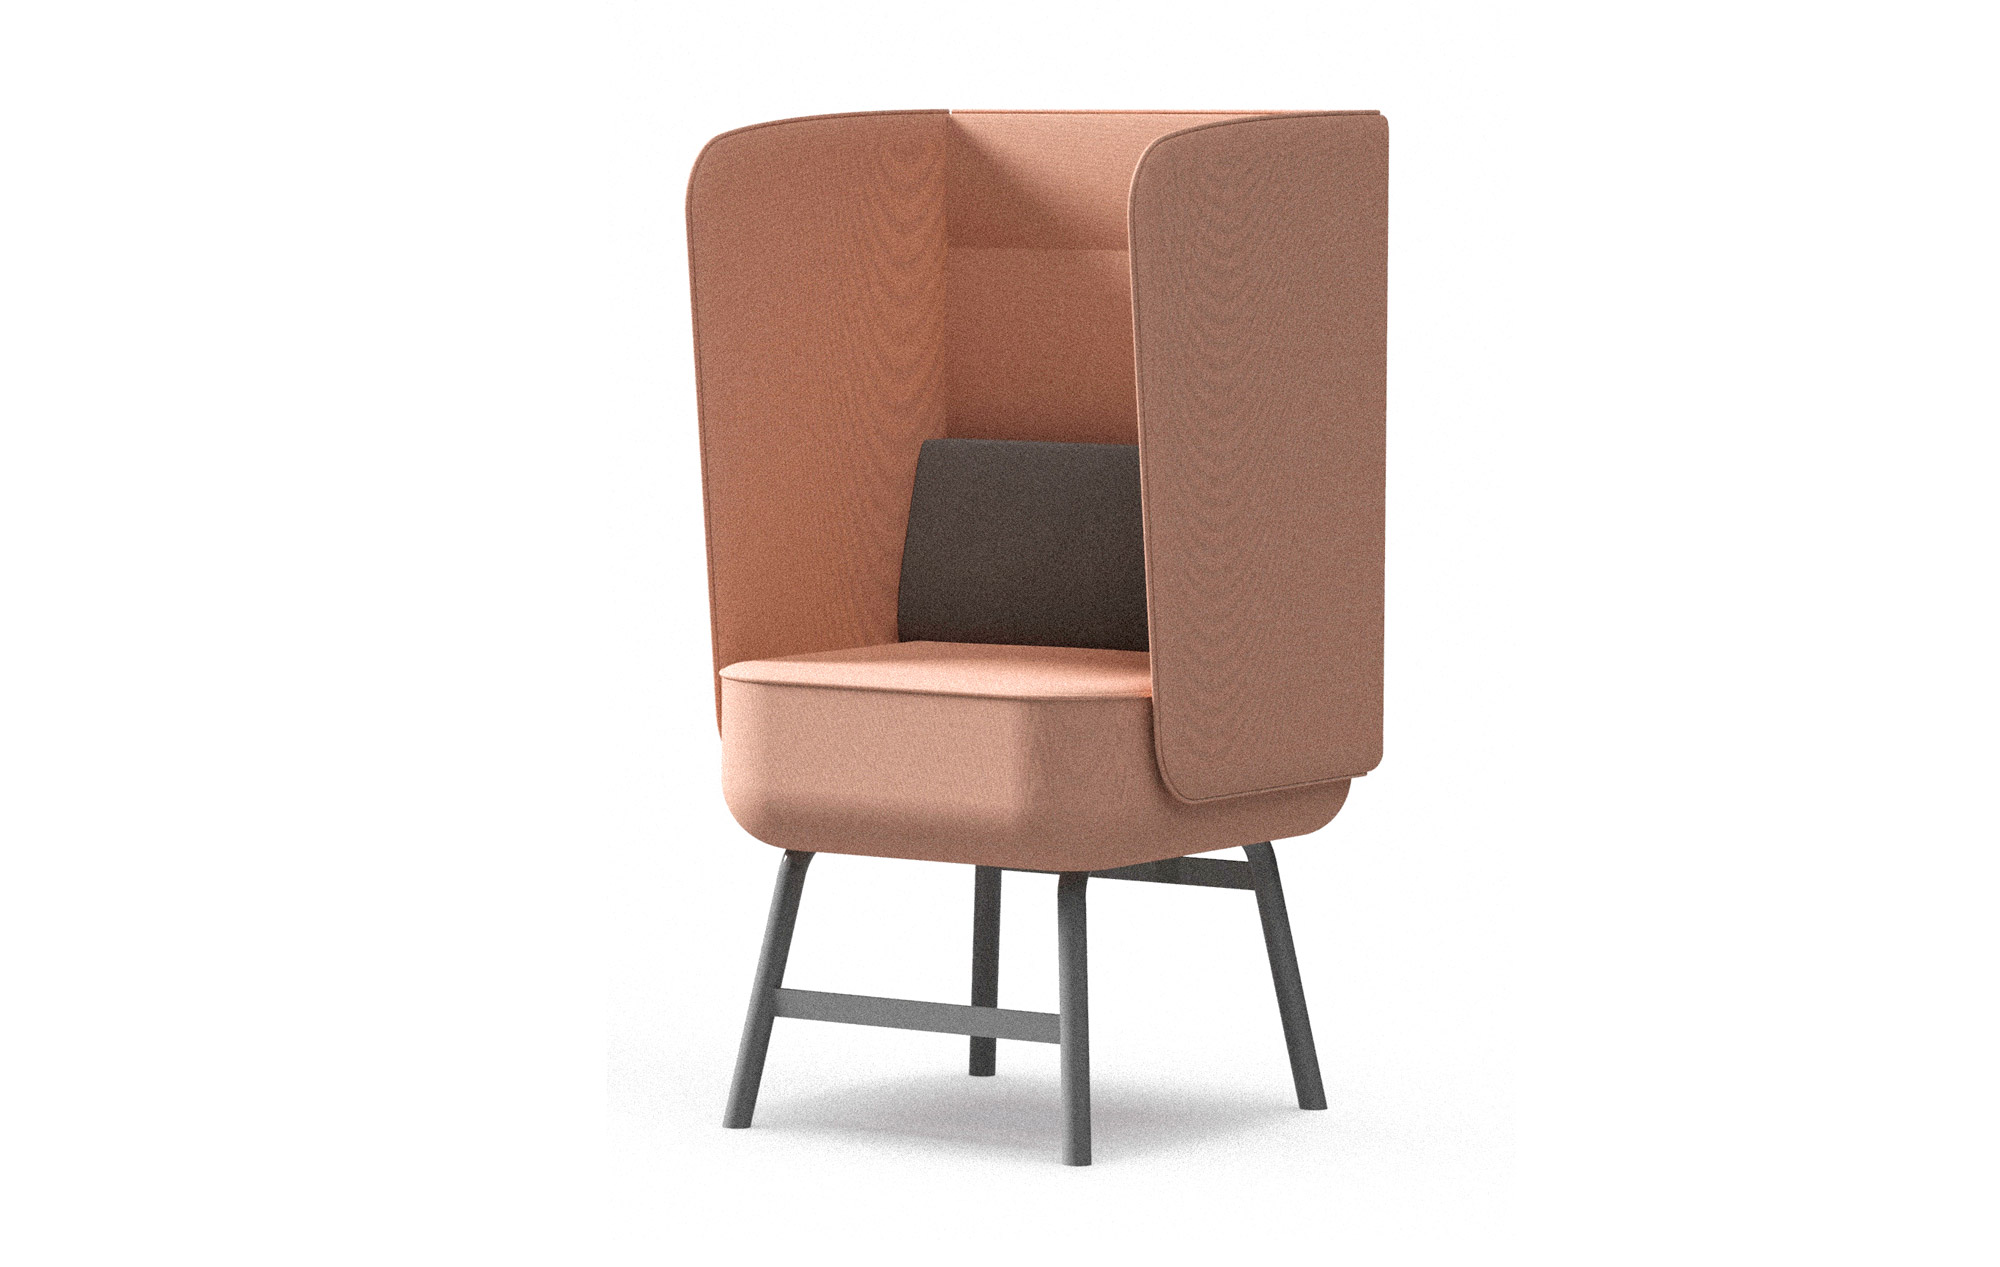 Big-Boi-armchair-2000